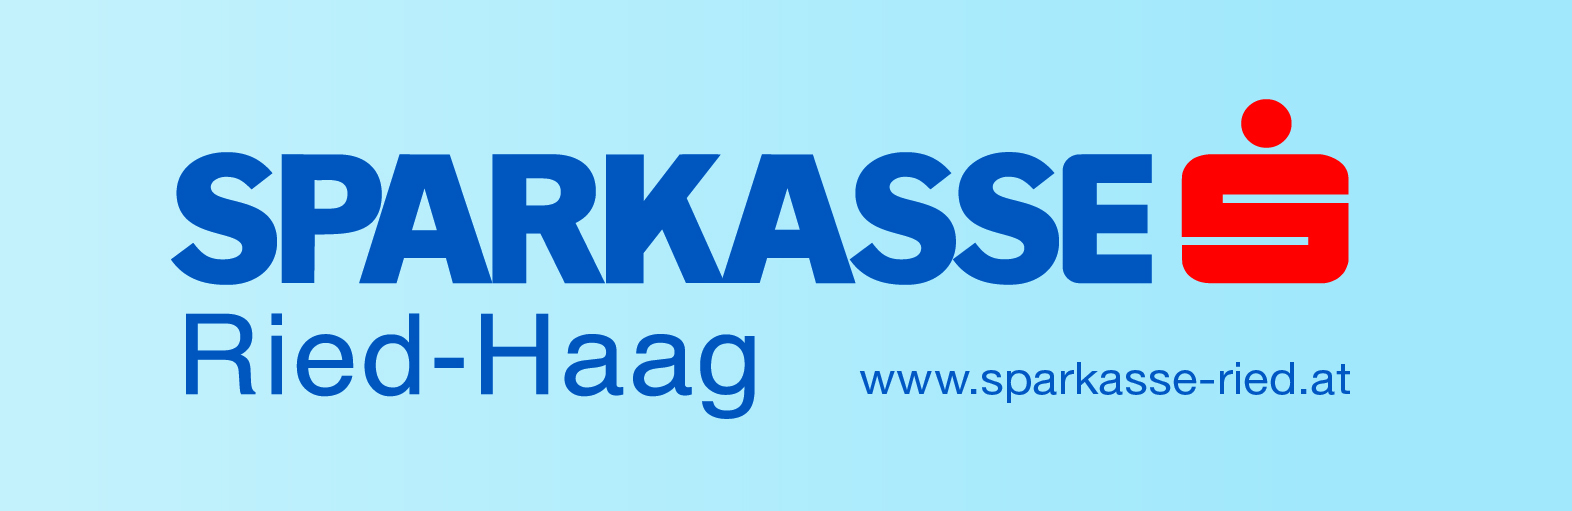 https://www.sparkasse.at/ried-haag/